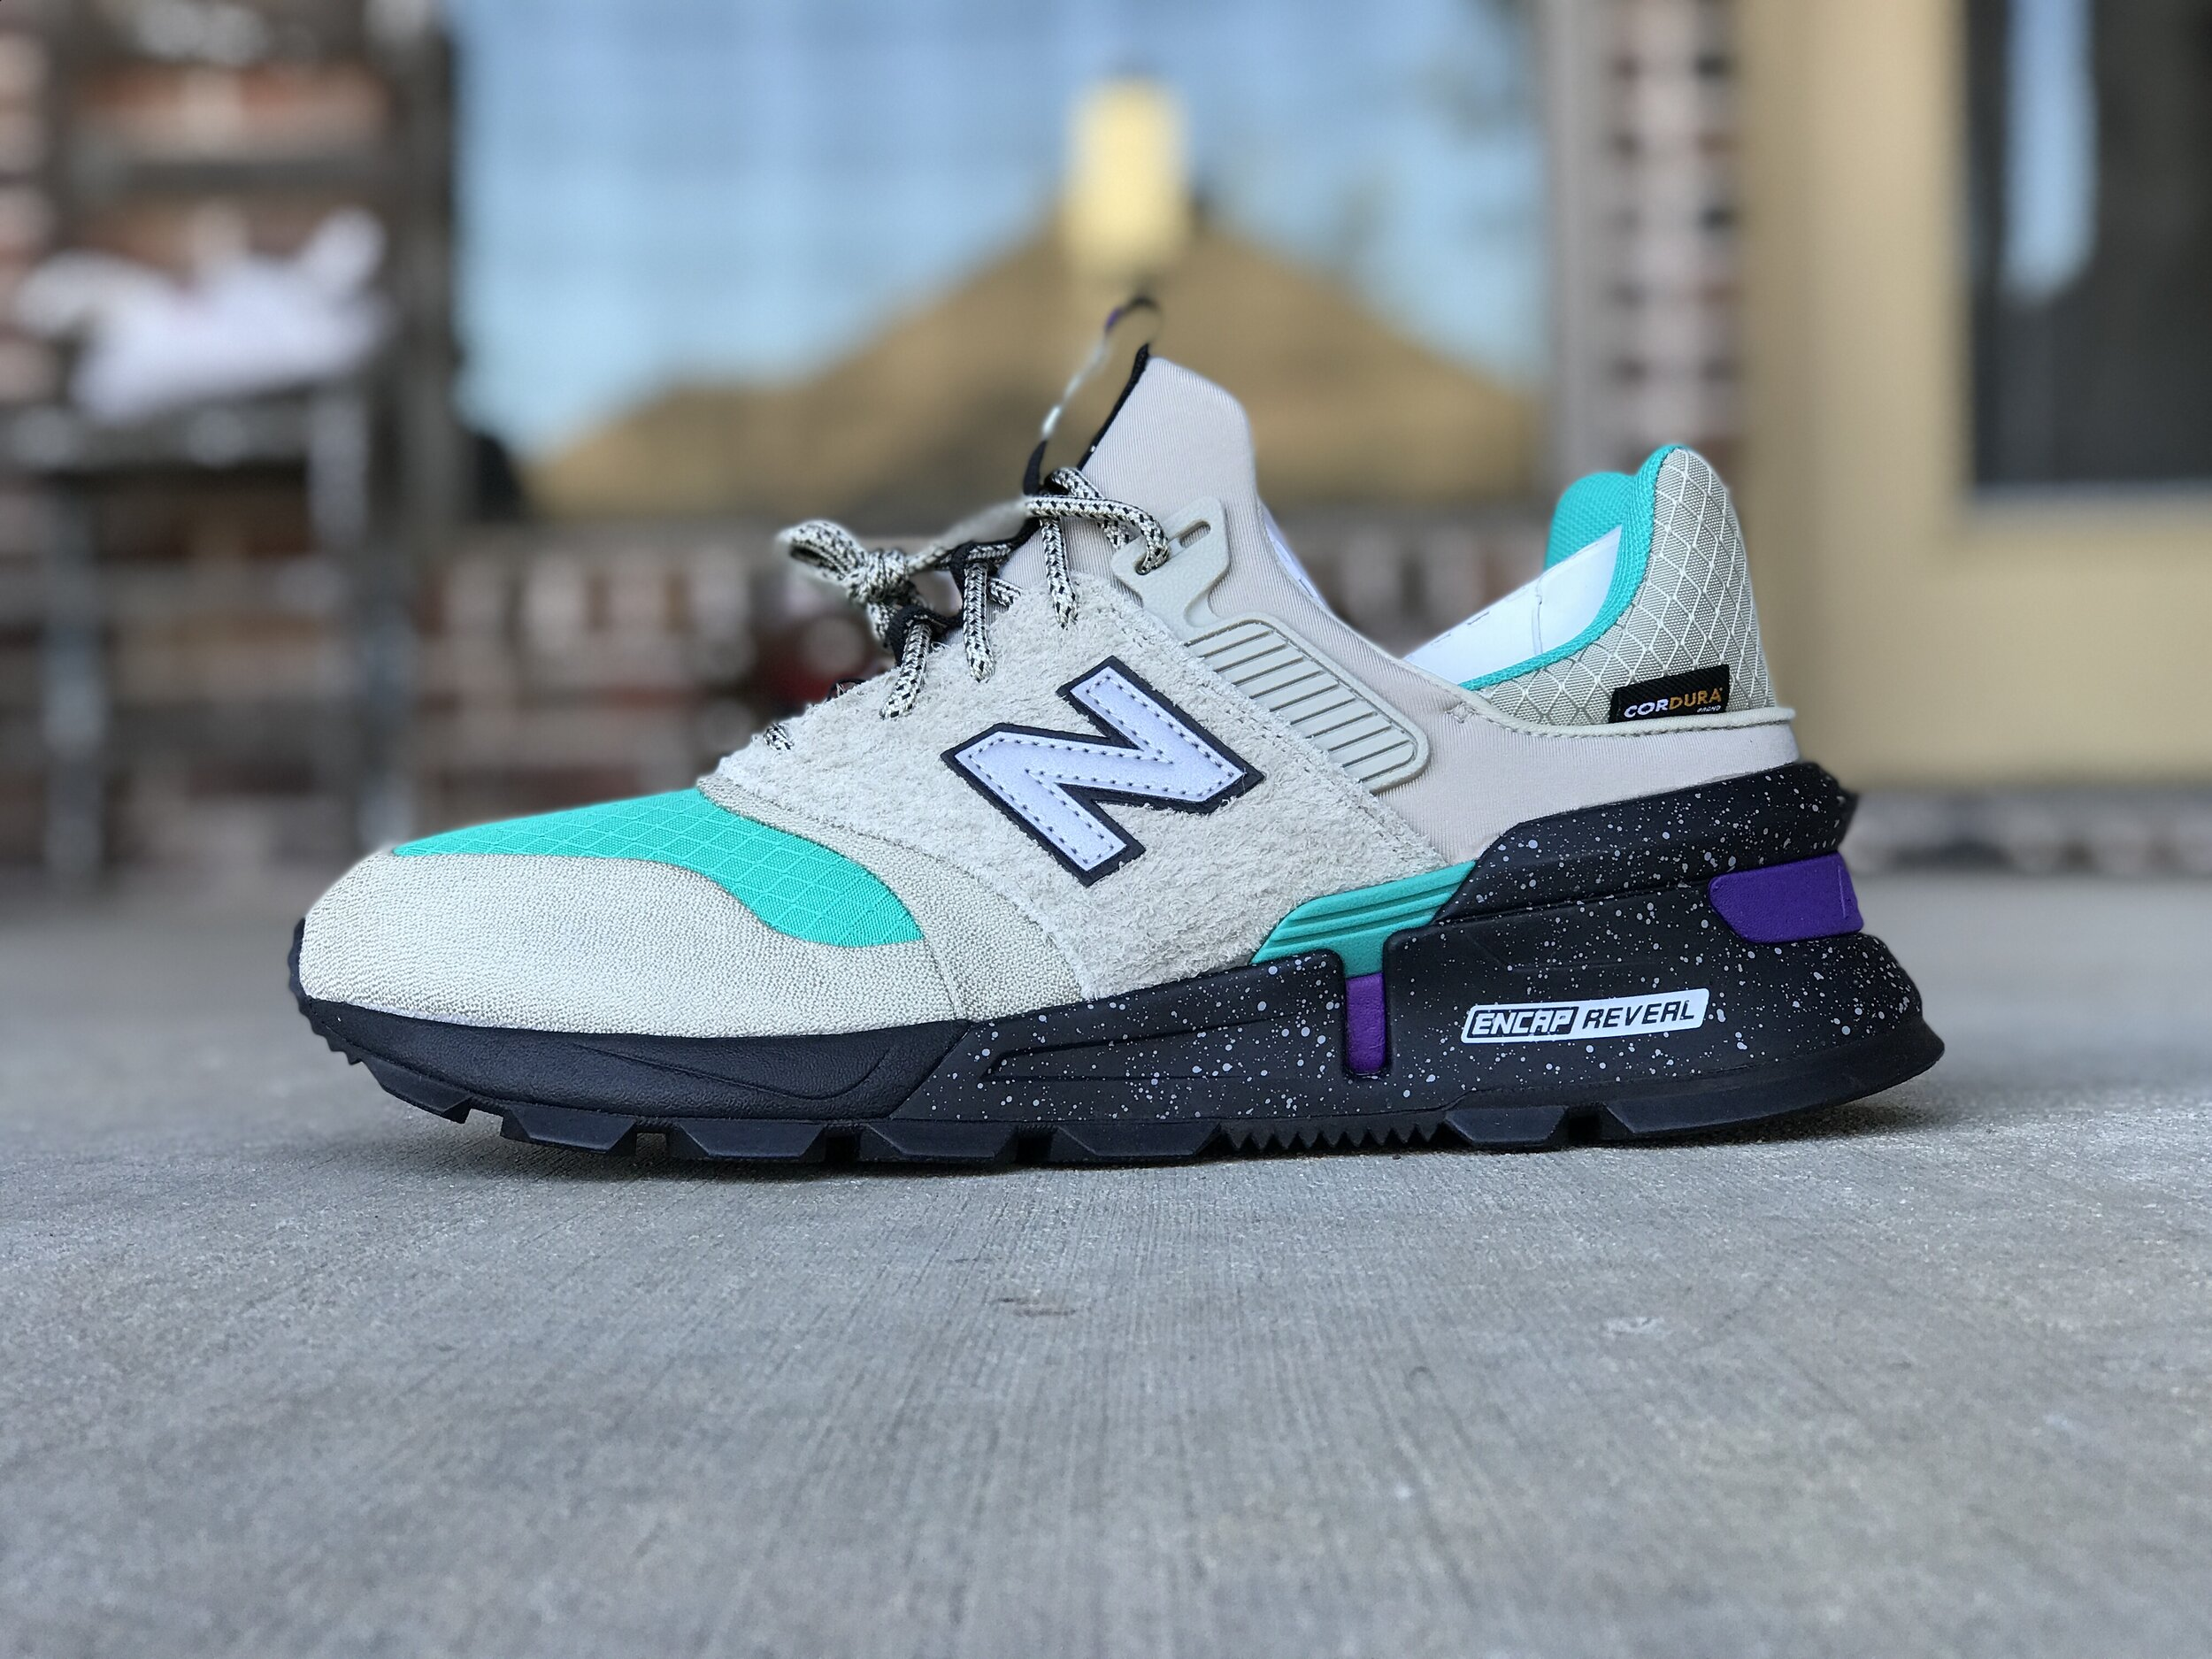 Unboxing The New Balance 997 Sport